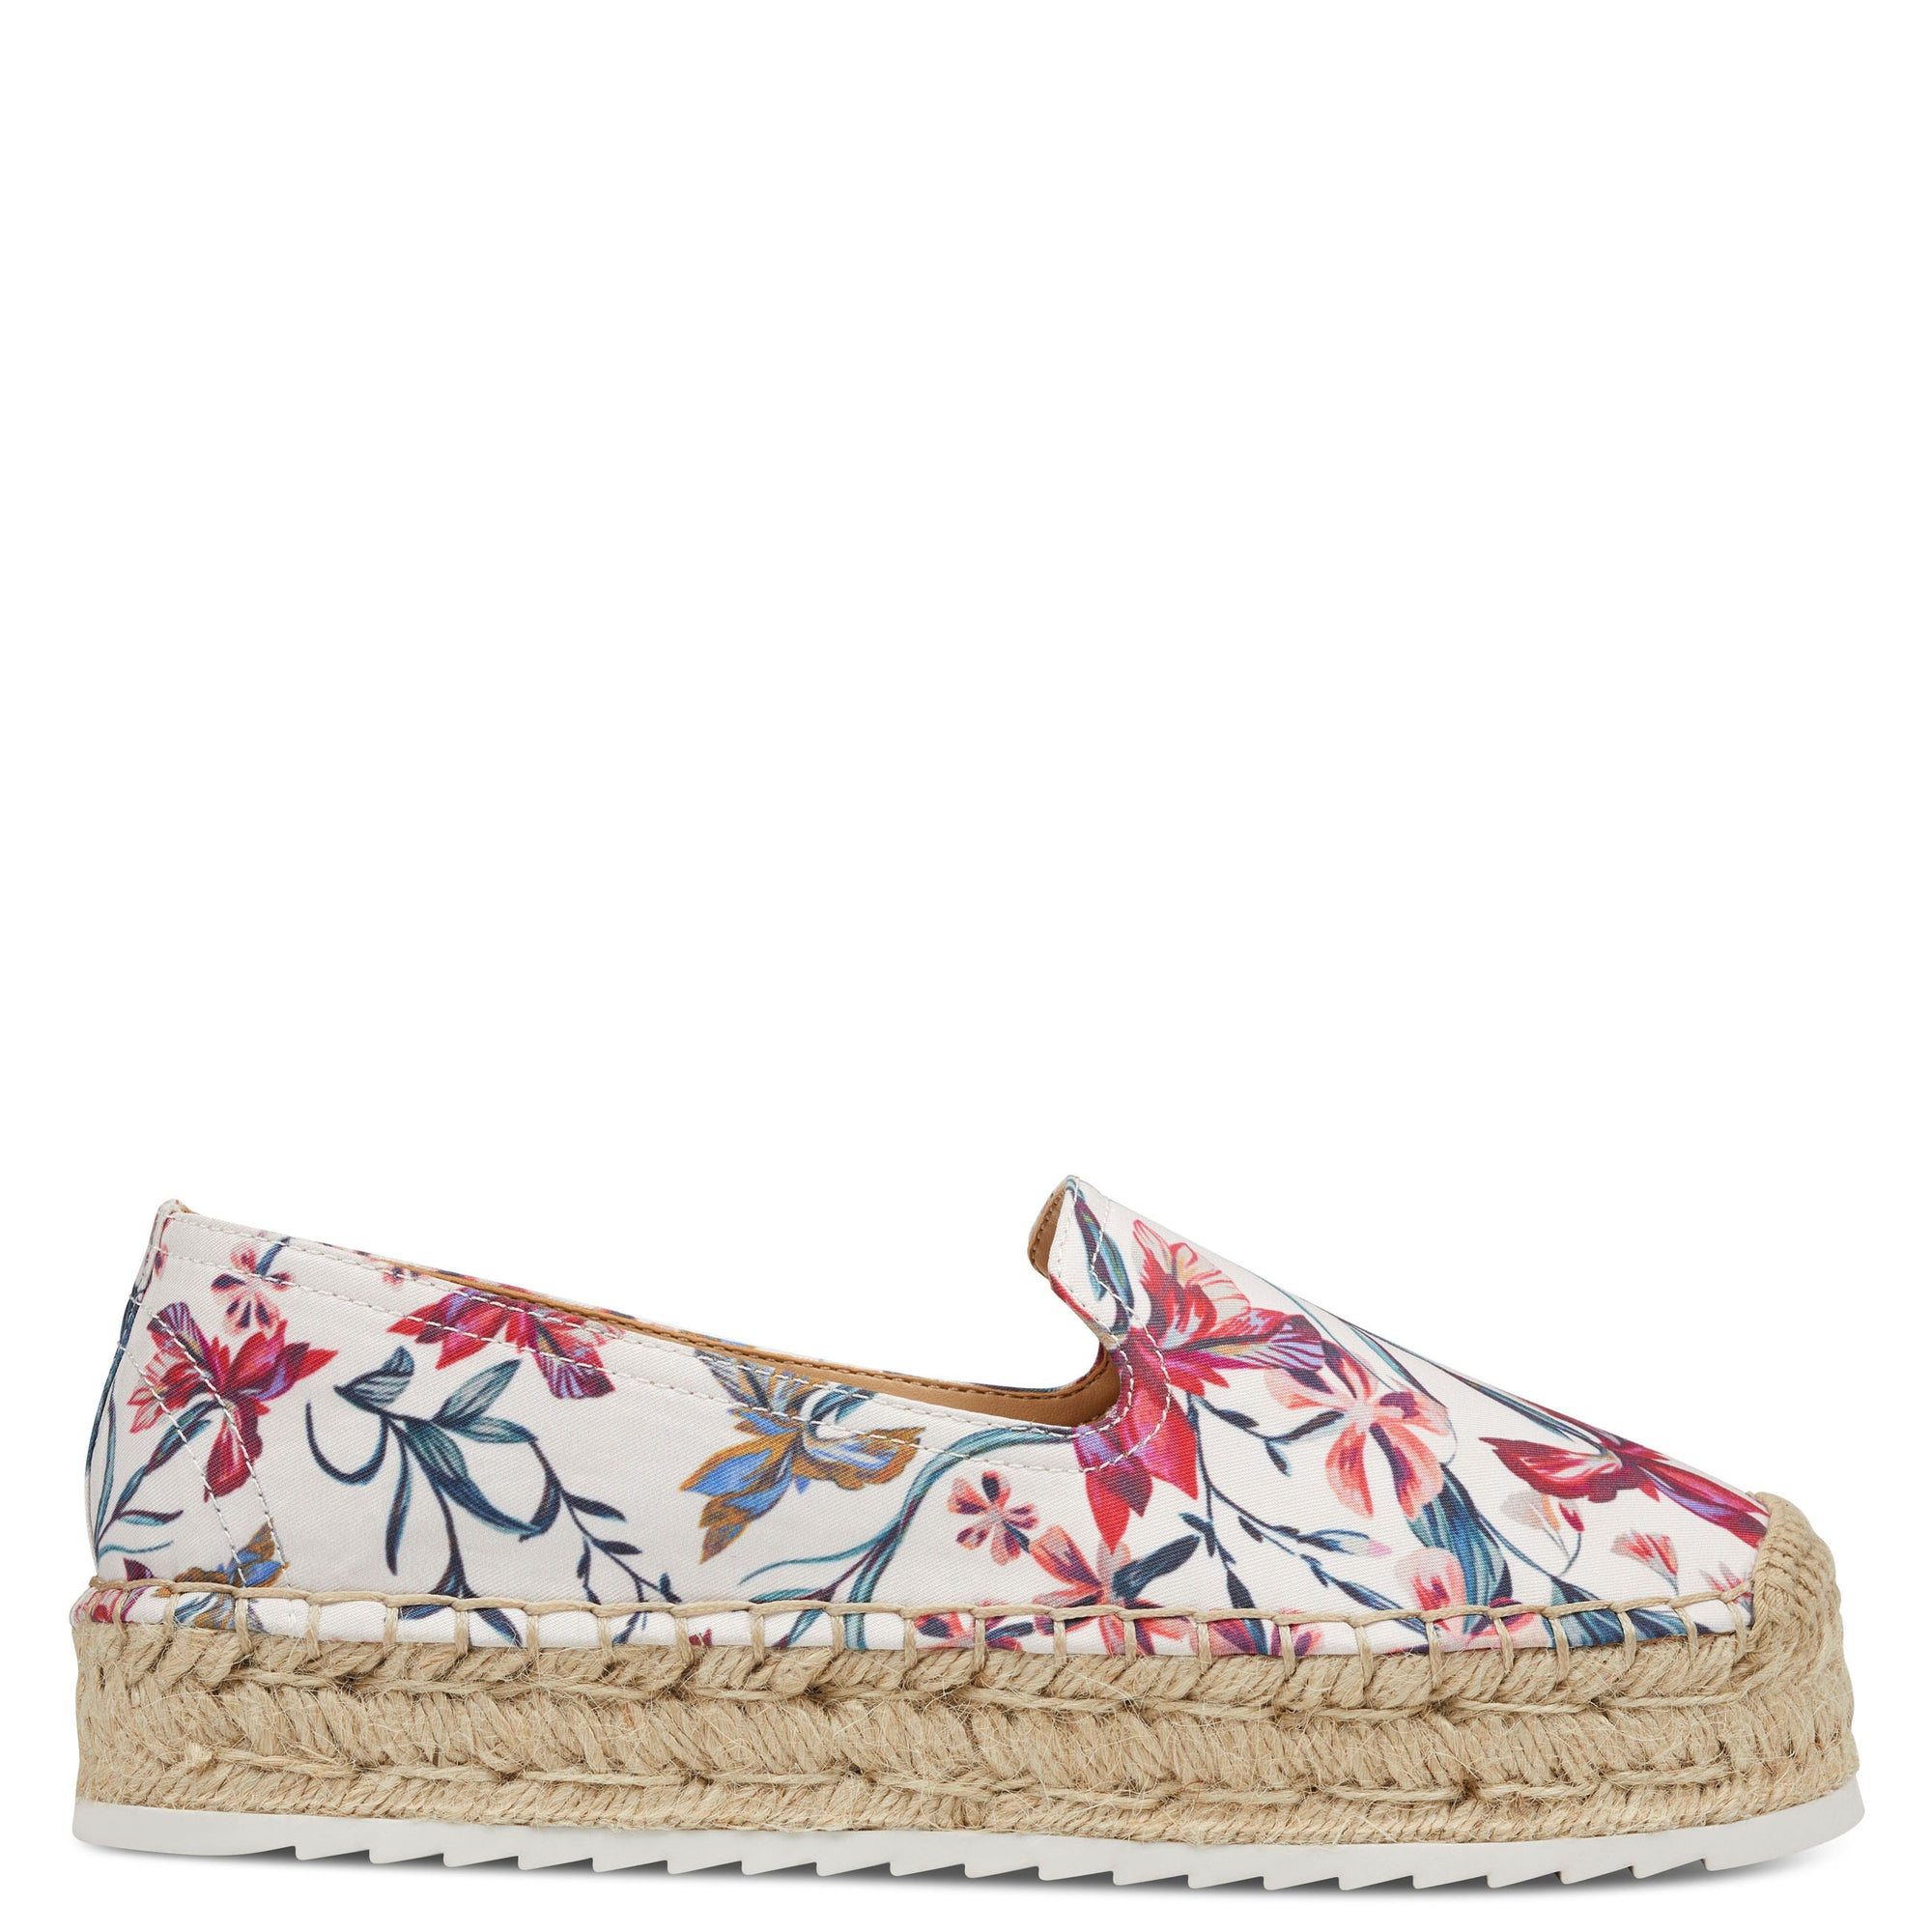 lucy-slip-on-espadrilles-in-floral